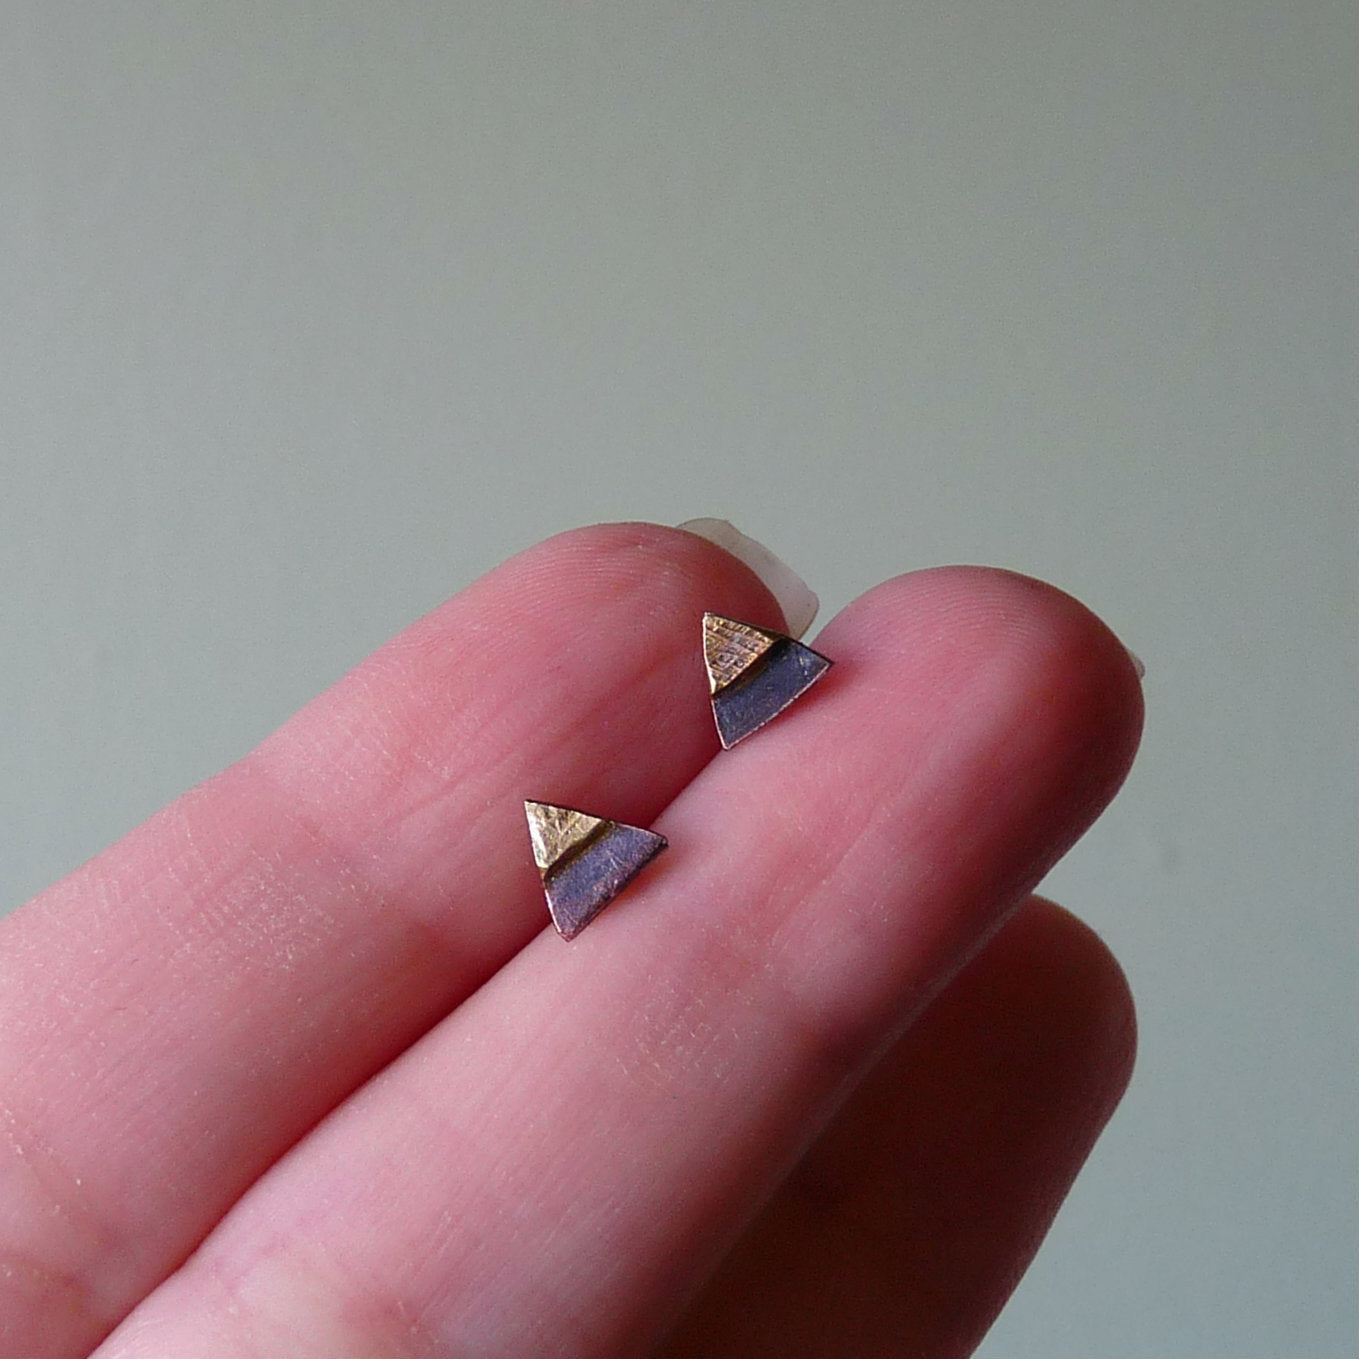 Copper, Brass & Sterling Silver Tiny Triangle Metalwork Stud Earrings